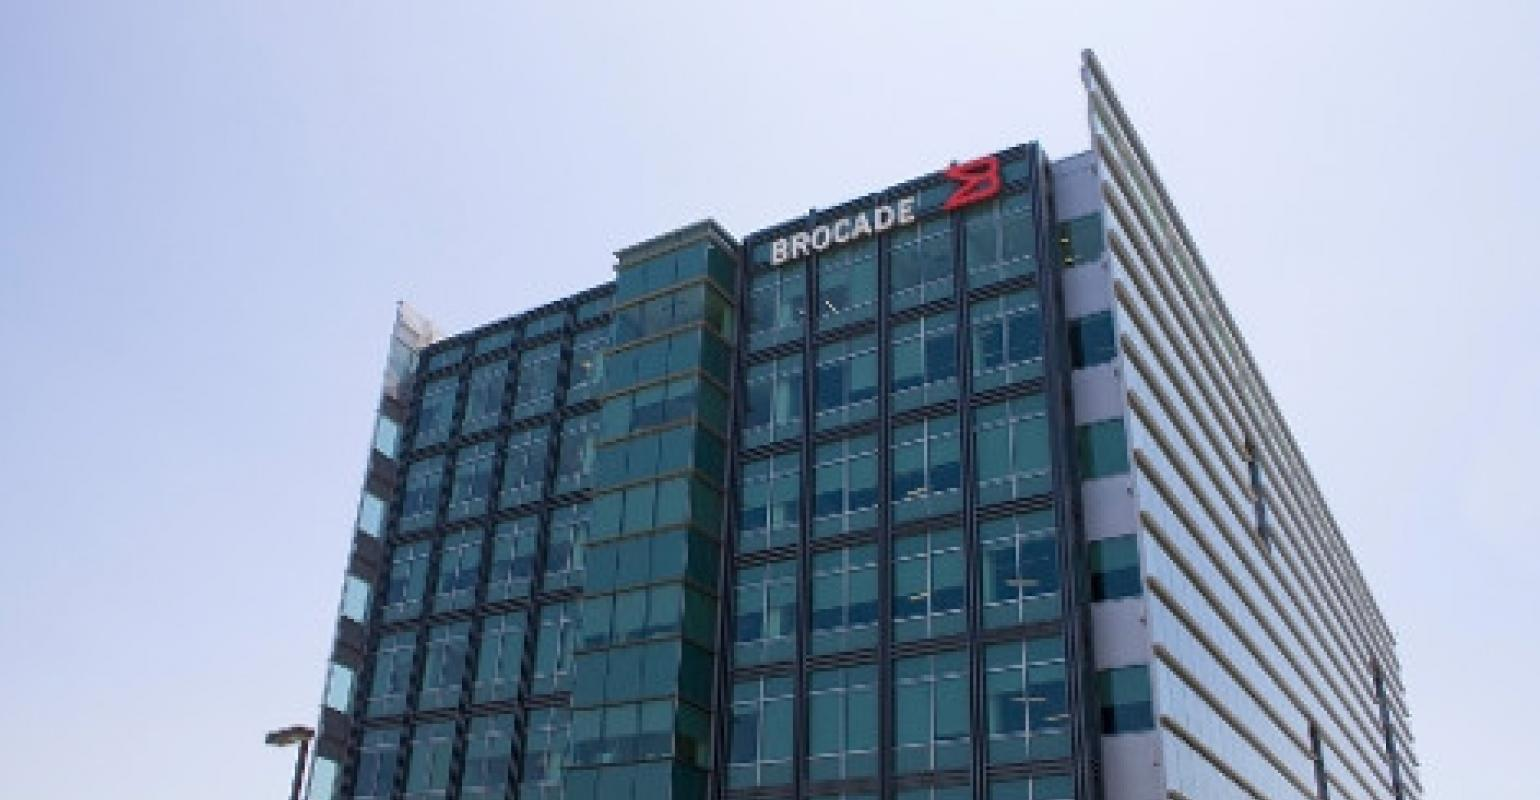 Brocade and Huawei Propose OpenStack Solution for Multitenant, Multi